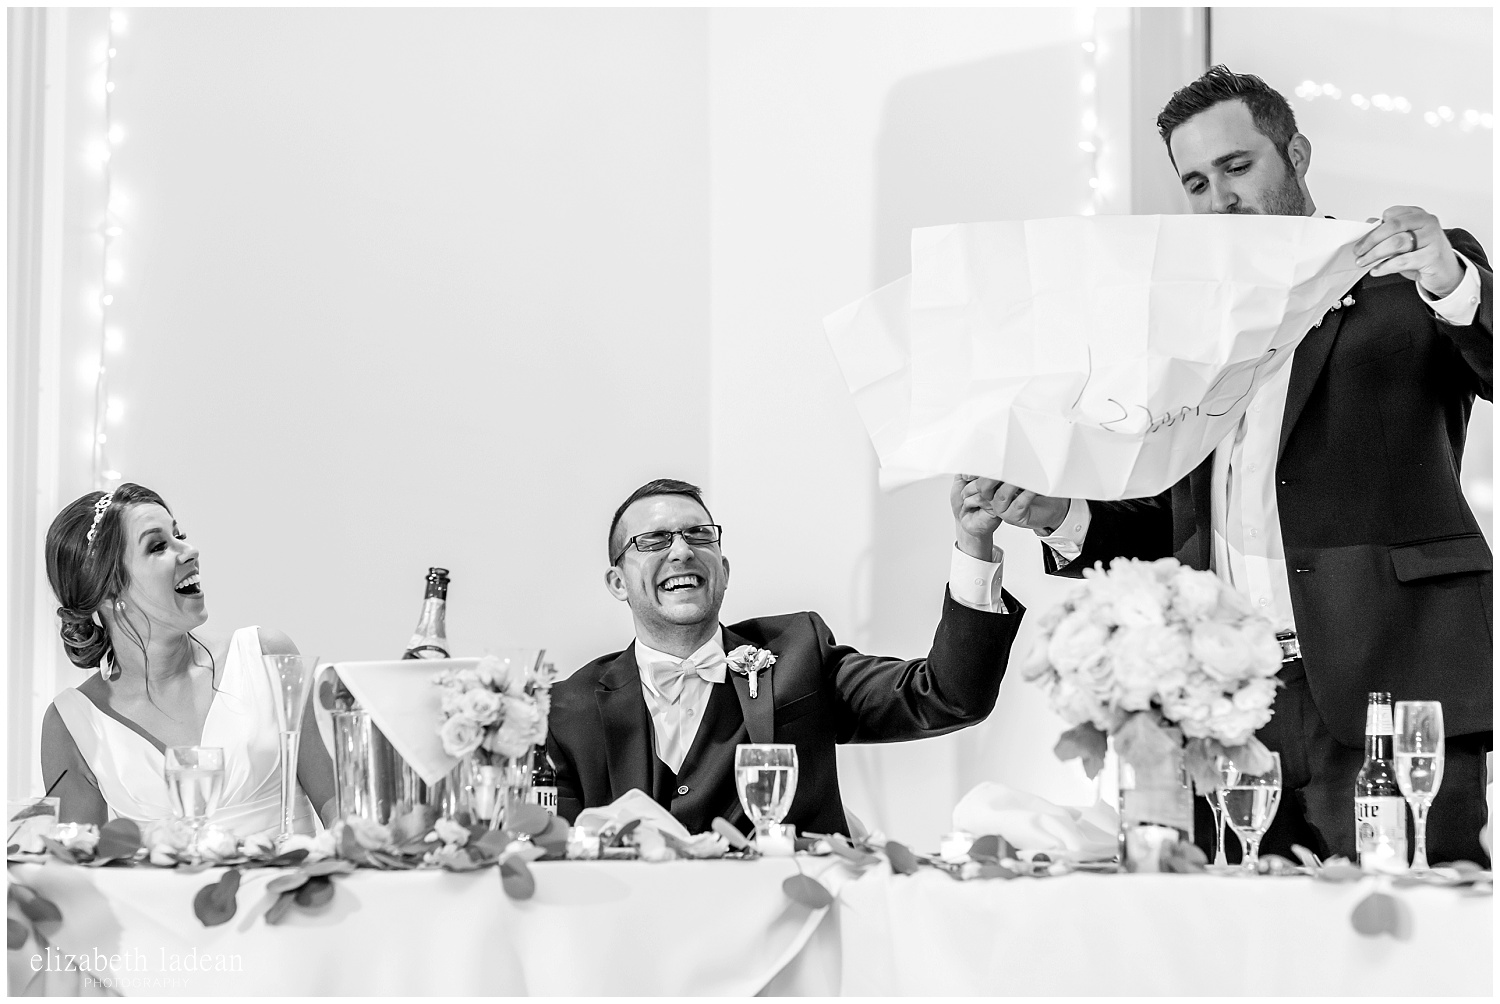 -behind-the-scenes-of-a-wedding-photographer-2018-elizabeth-ladean-photography-photo_3427.jpg